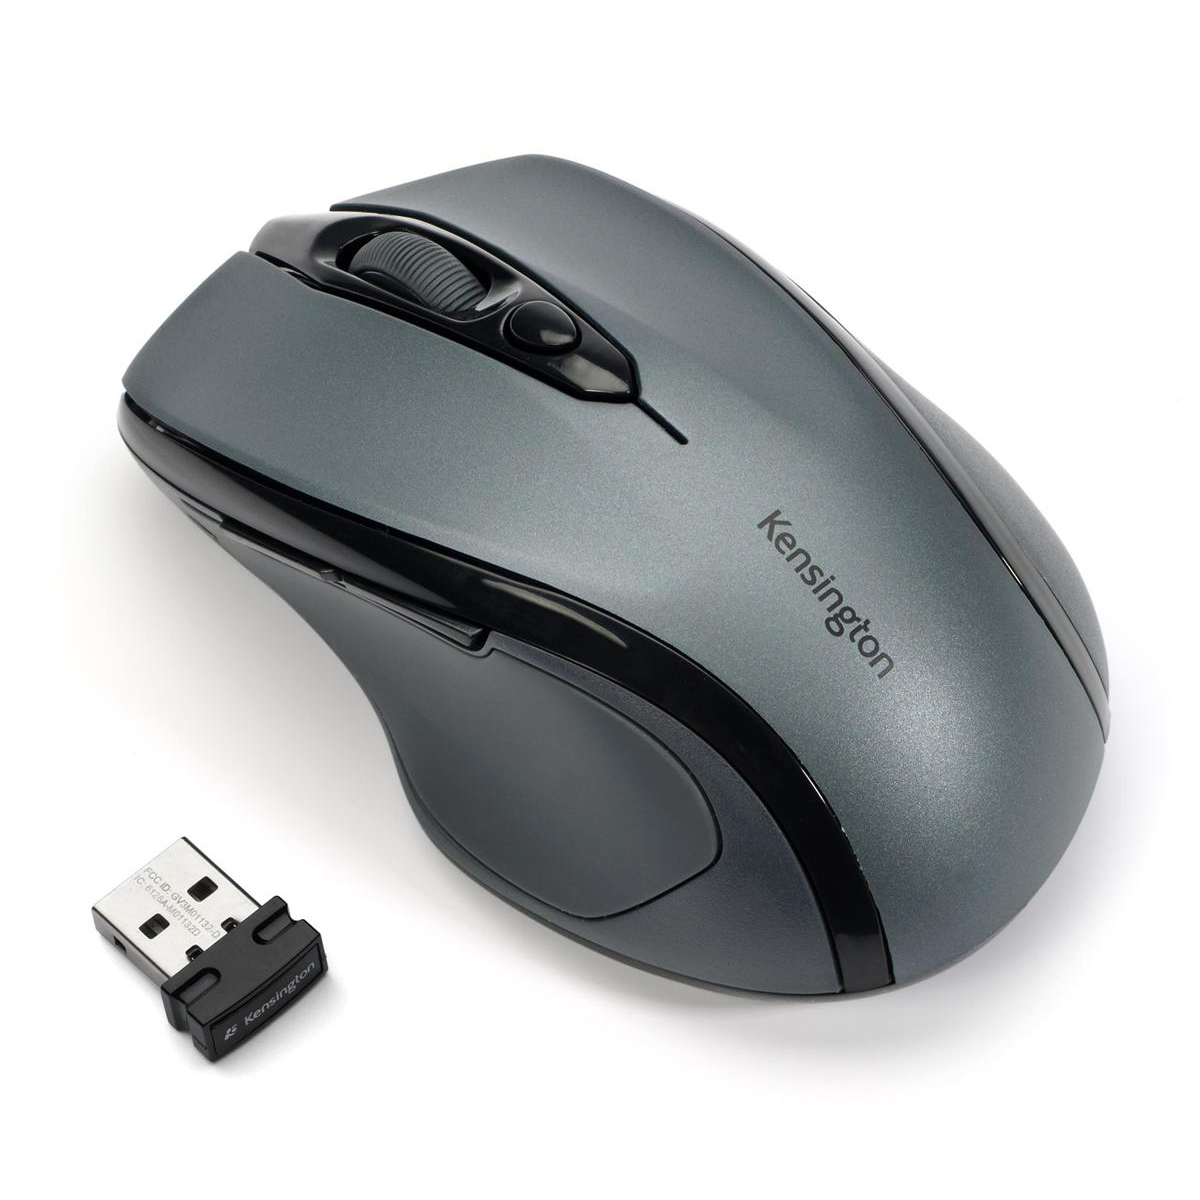 Kensington Pro Fit Mouse Mid-Size Optical Wireless Right Handed Graphite Grey Ref K72423WW